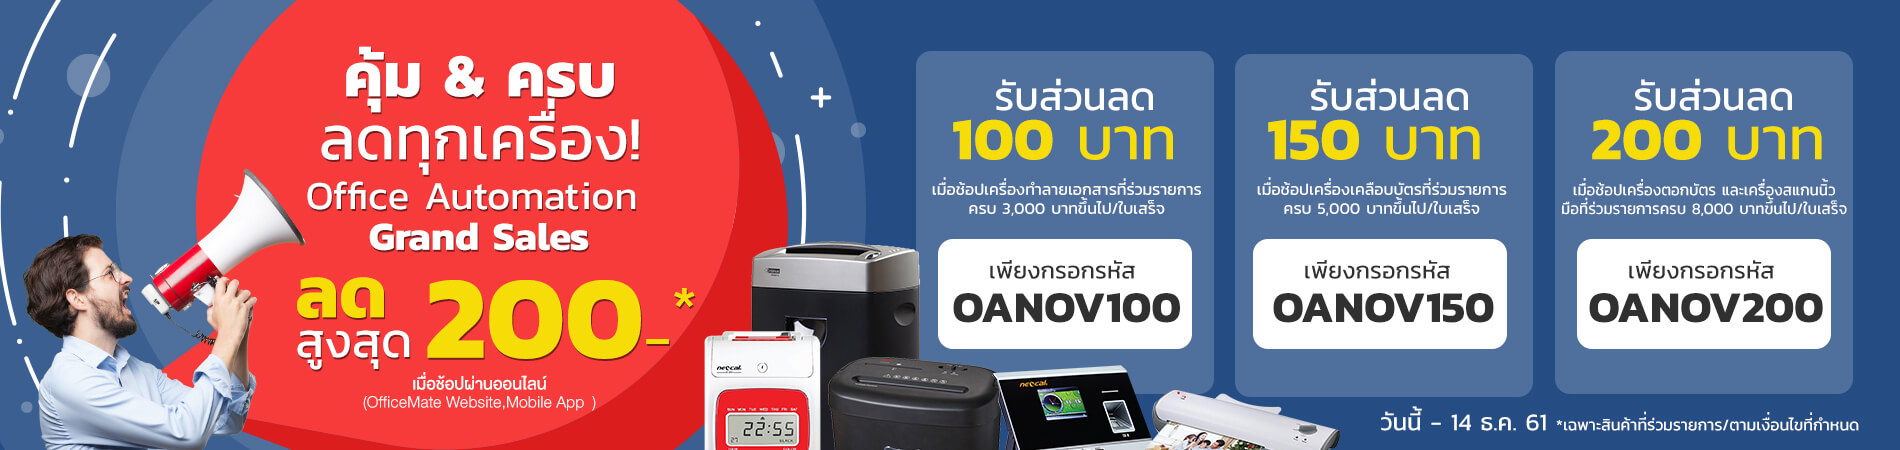 Office Automation Grand Sales _1Nov-14Dec18